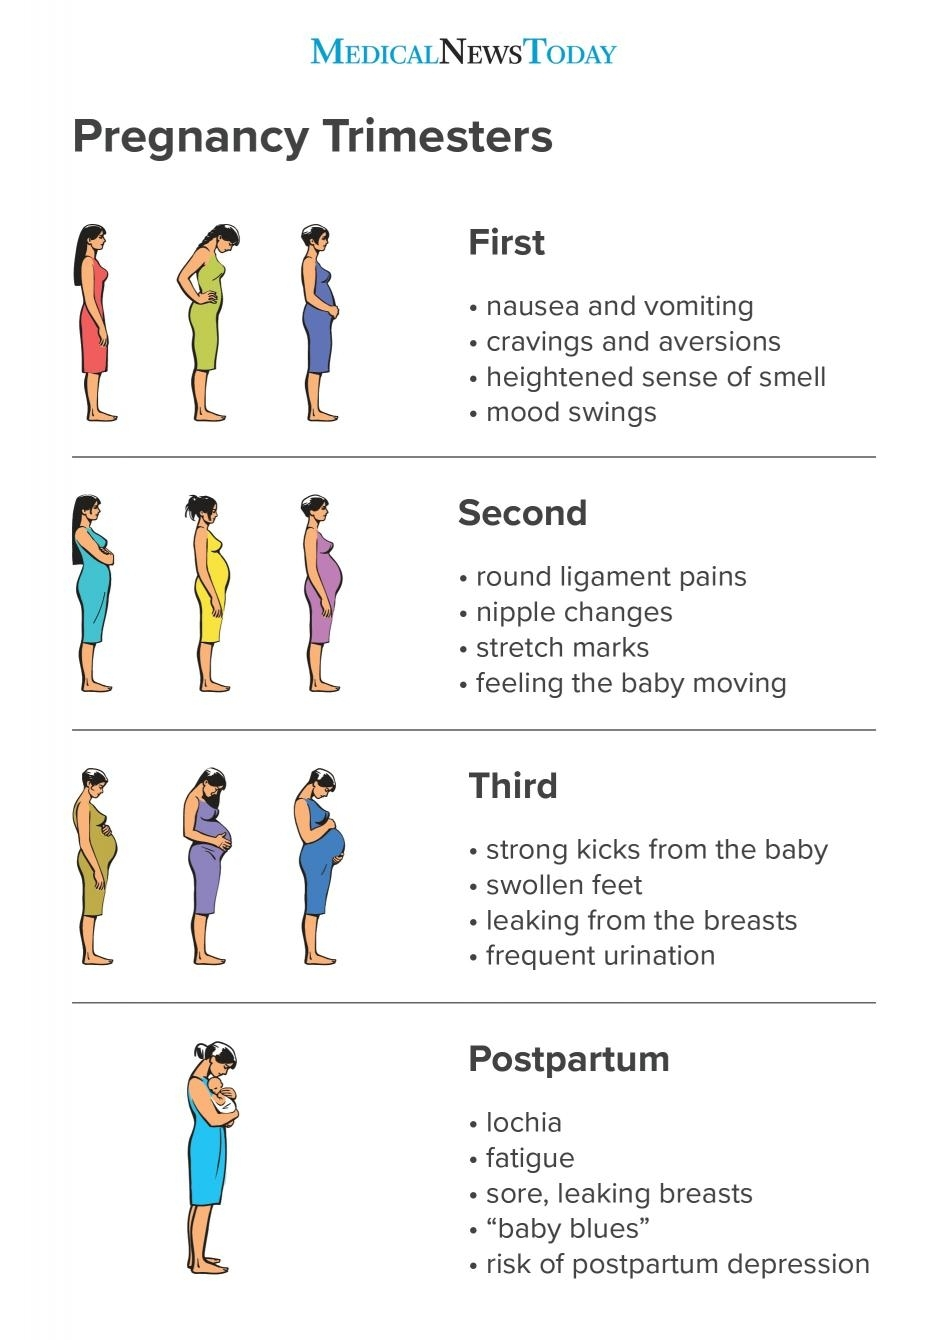 Pregnancy Trimesters: Everything You Need To Know intended for Pregnancy Stages Months And Weeks